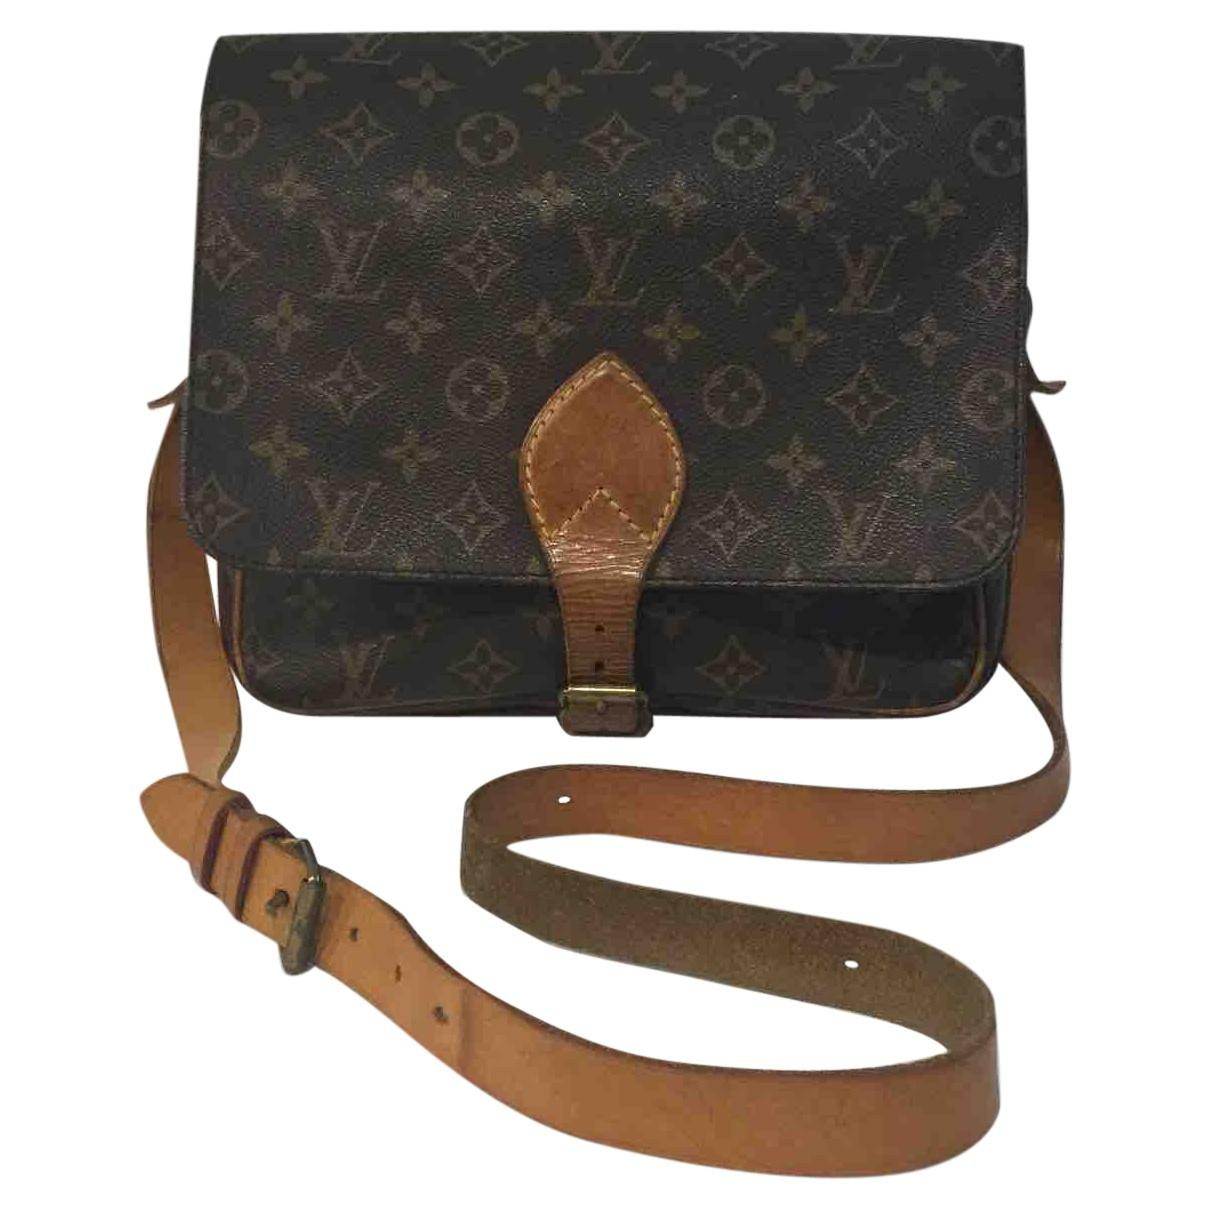 6af5b09df8b3 Louis Vuitton Pre-owned Brown Cloth Handbag in Brown - Lyst